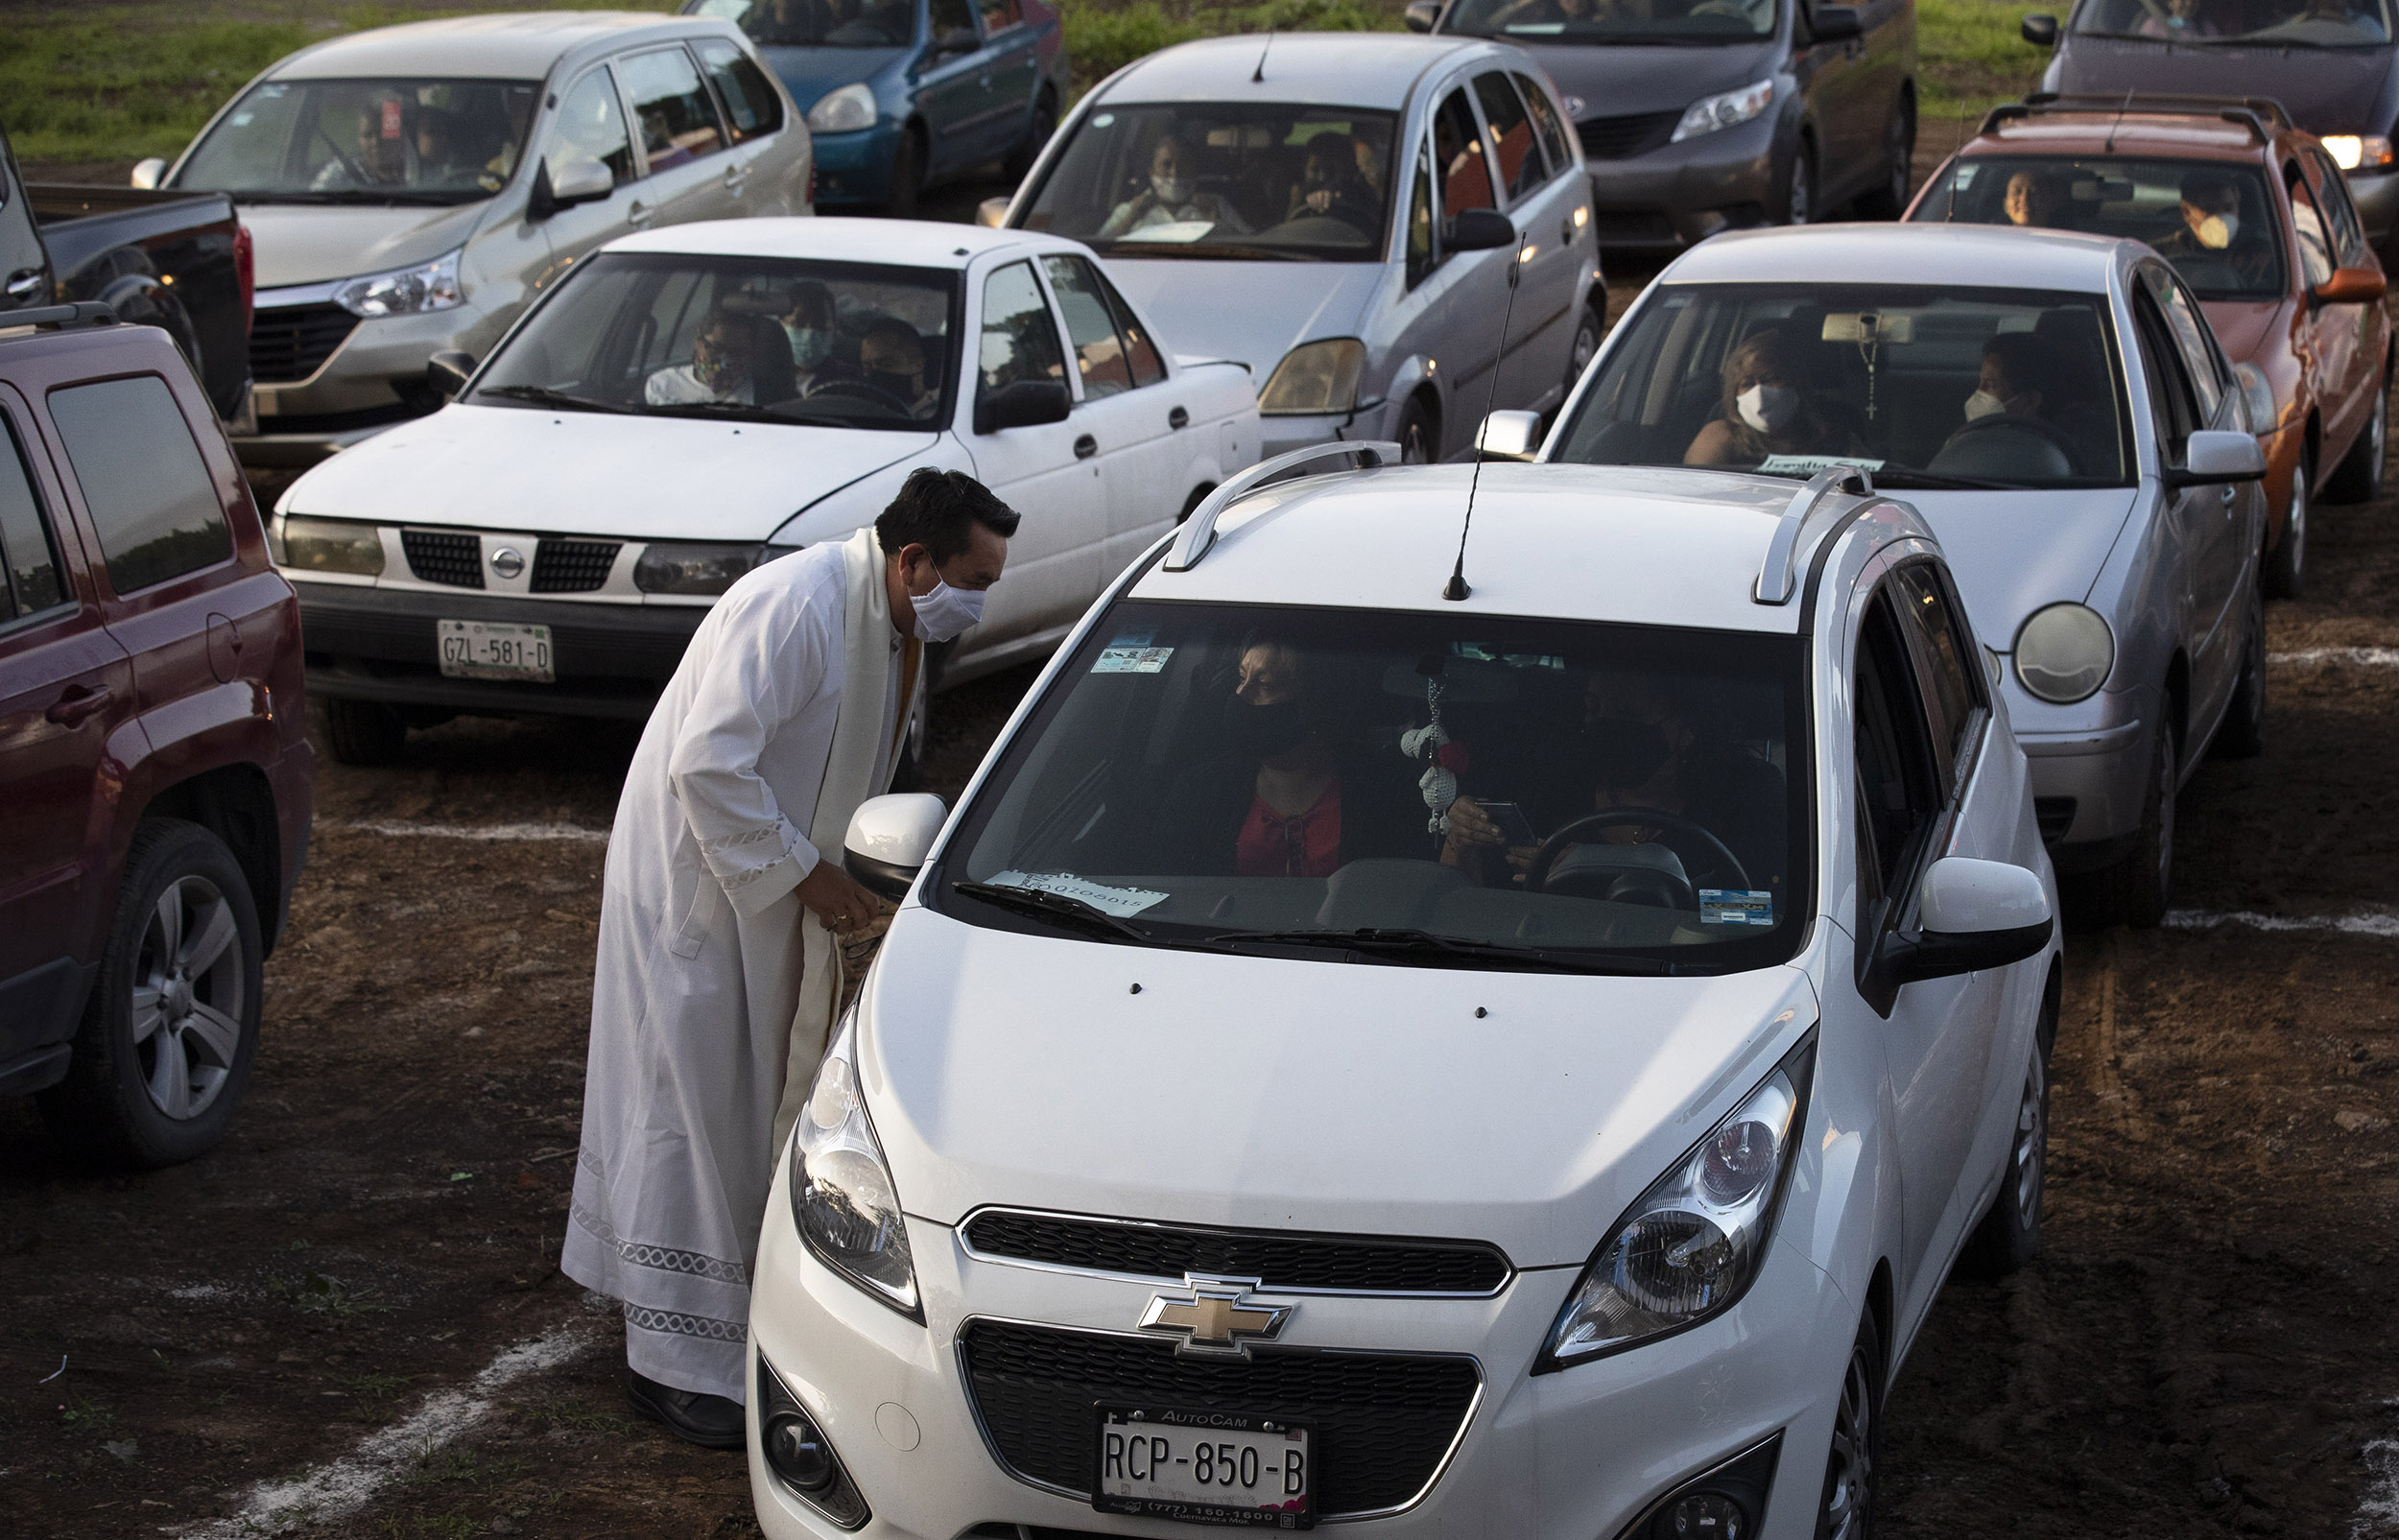 Father Tomas Torres Najera, Vicar of the Cuernavaca Diocese greets parishioners sitting in their cars before Mass at a drive-in cinema in Cuernavaca, Mexico, on Sunday, August 2.